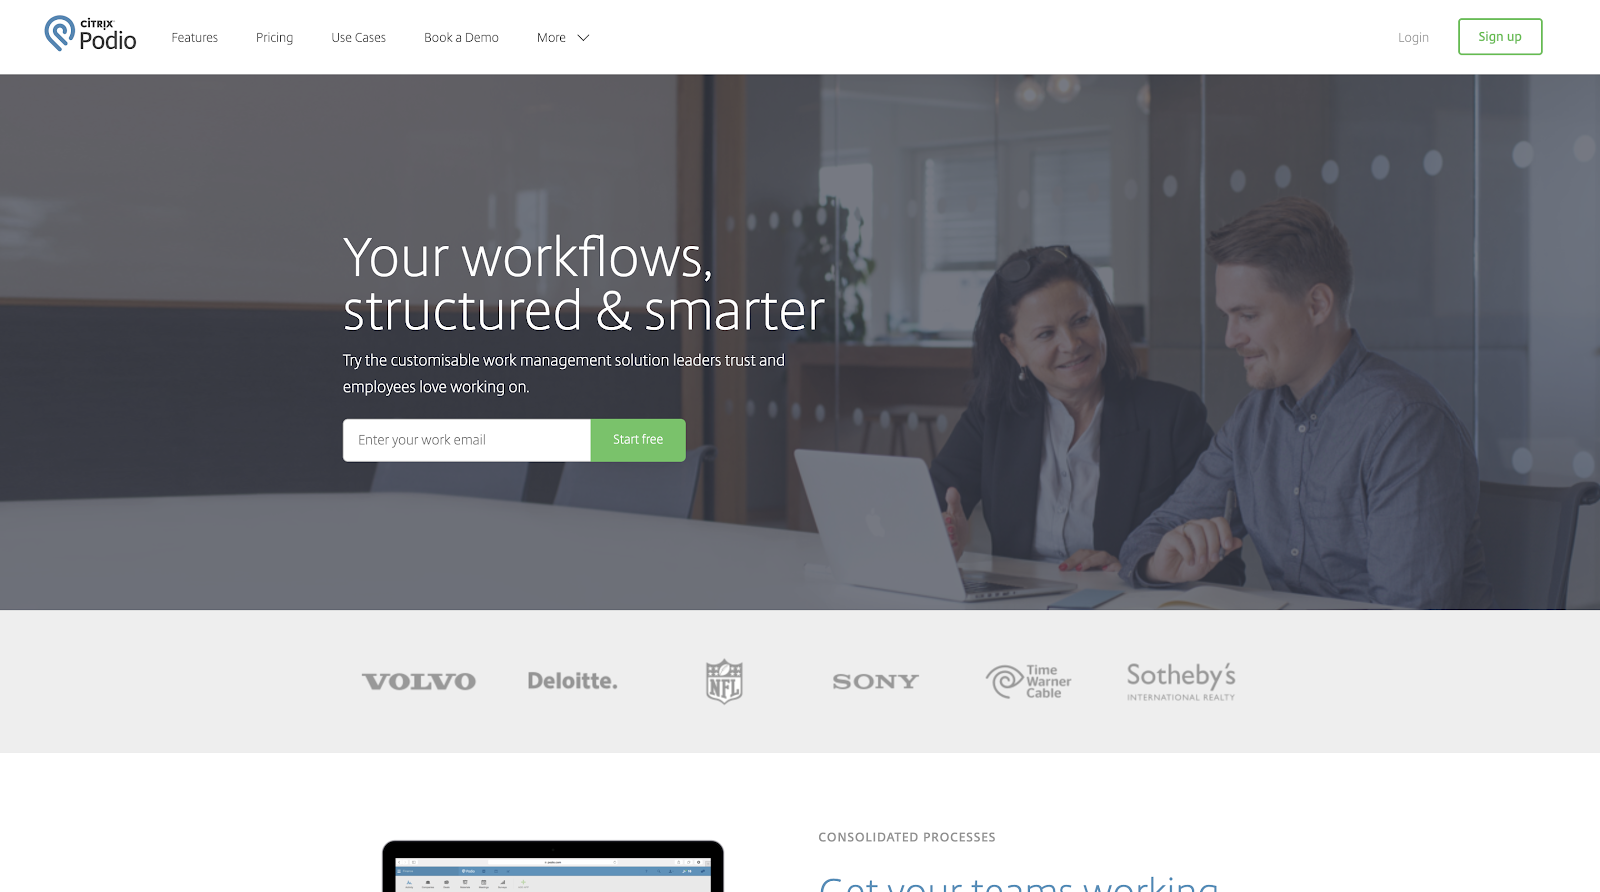 Podio - Your workflows, structured & smarter